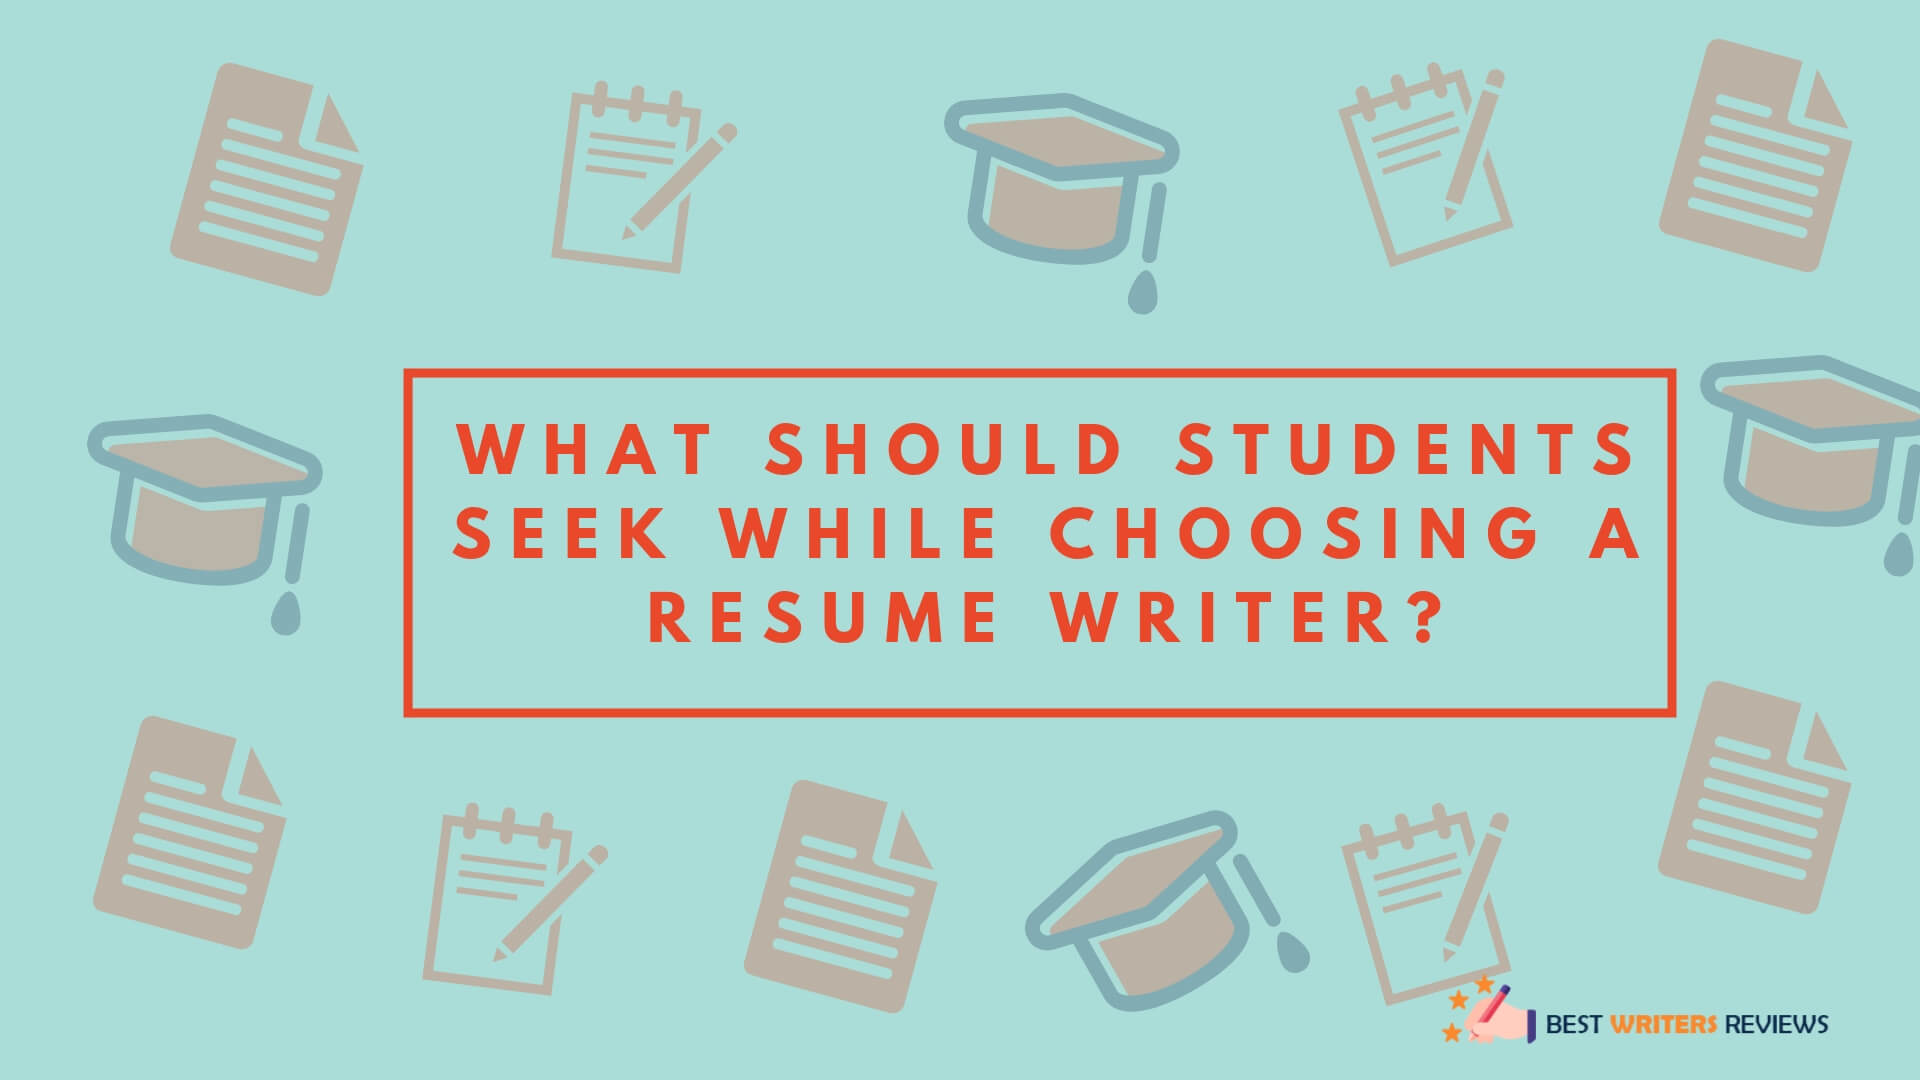 What Should Students Seek While Choosing A Resume Writer